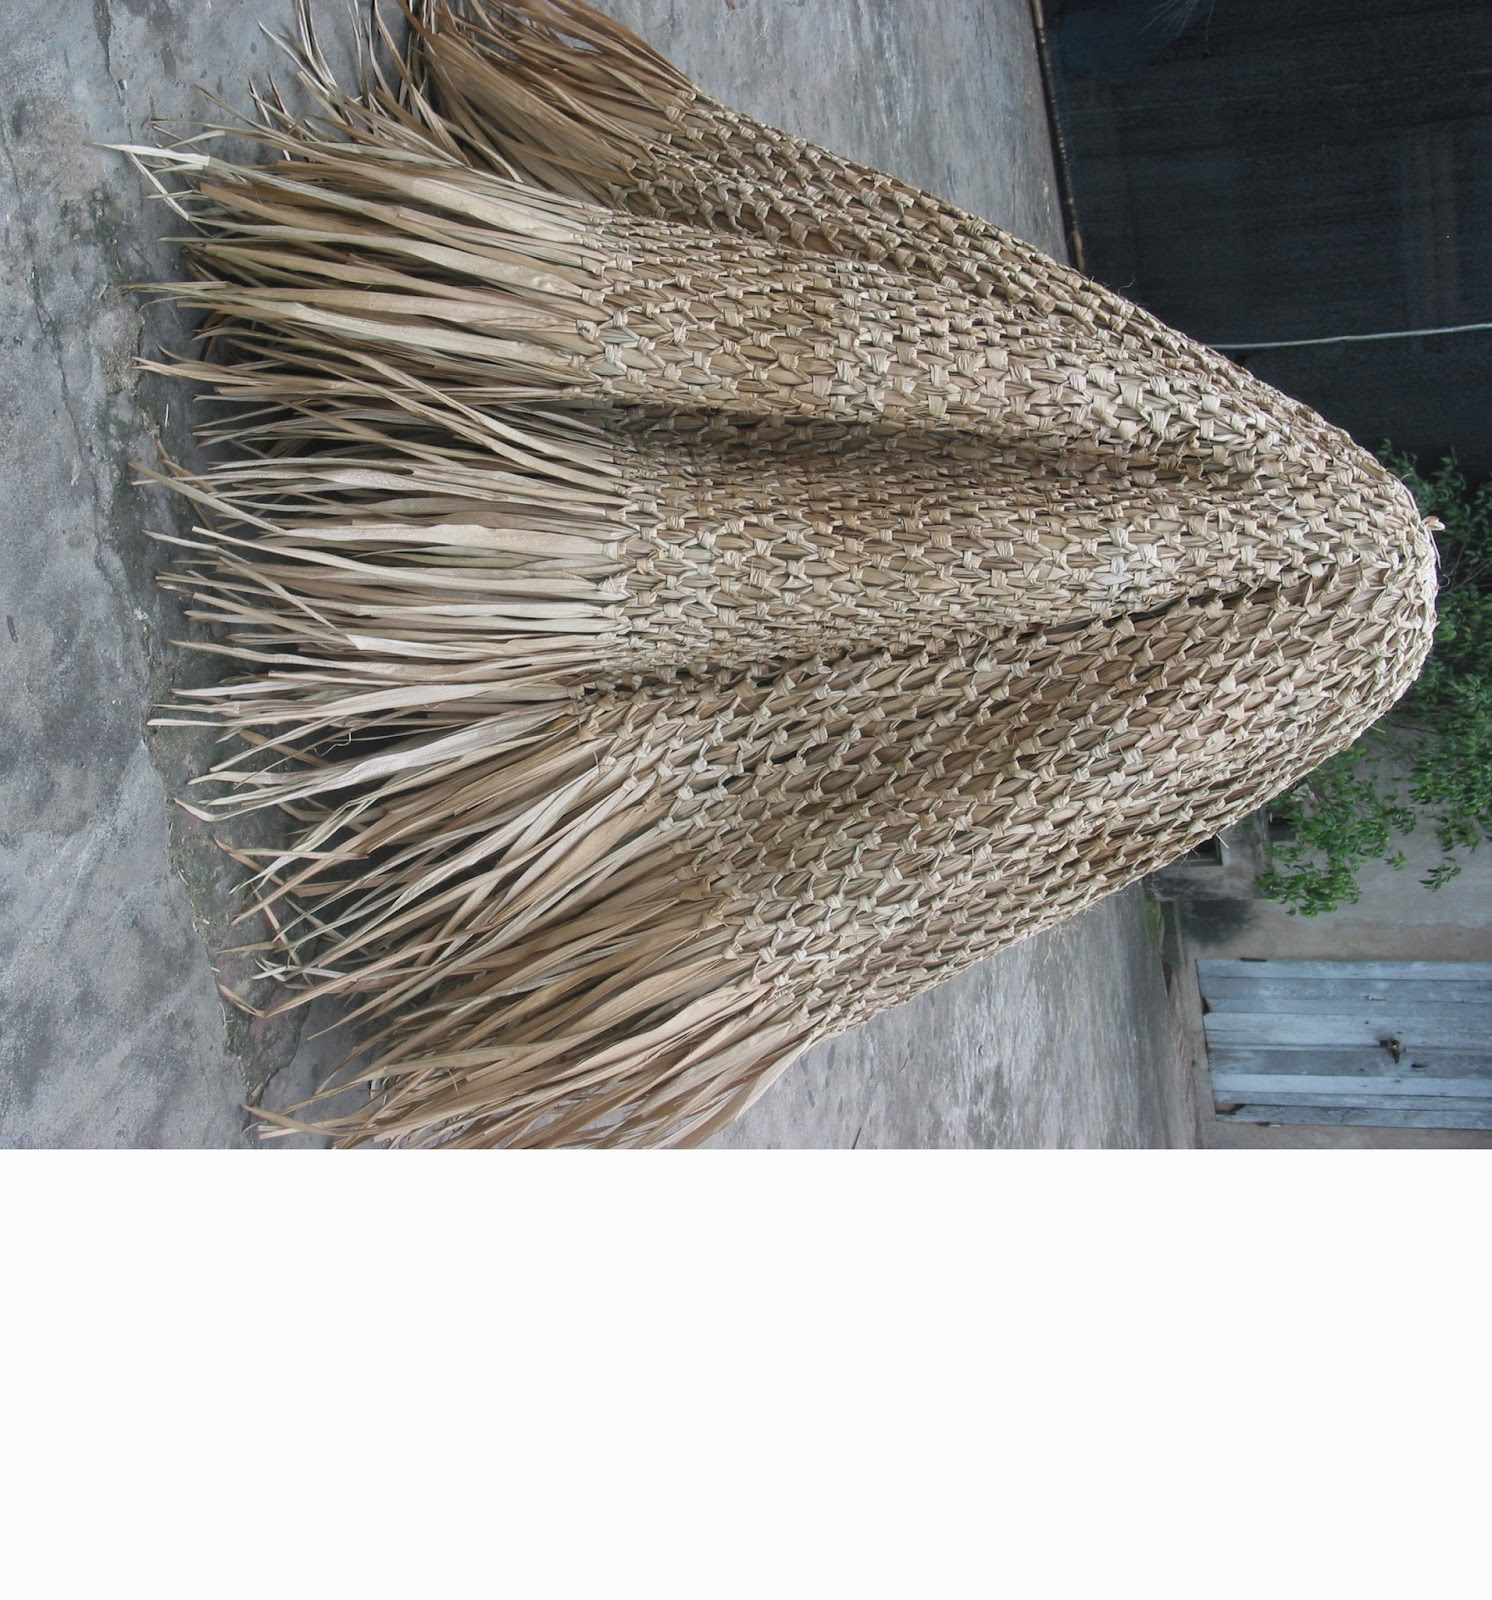 Hunt Duck Blinds Palm Thatch,/thatch Panel/thatch Umbrella Cover/thatching/tiki  Bar Decor(tropical Theme) Building W/thatch Roof